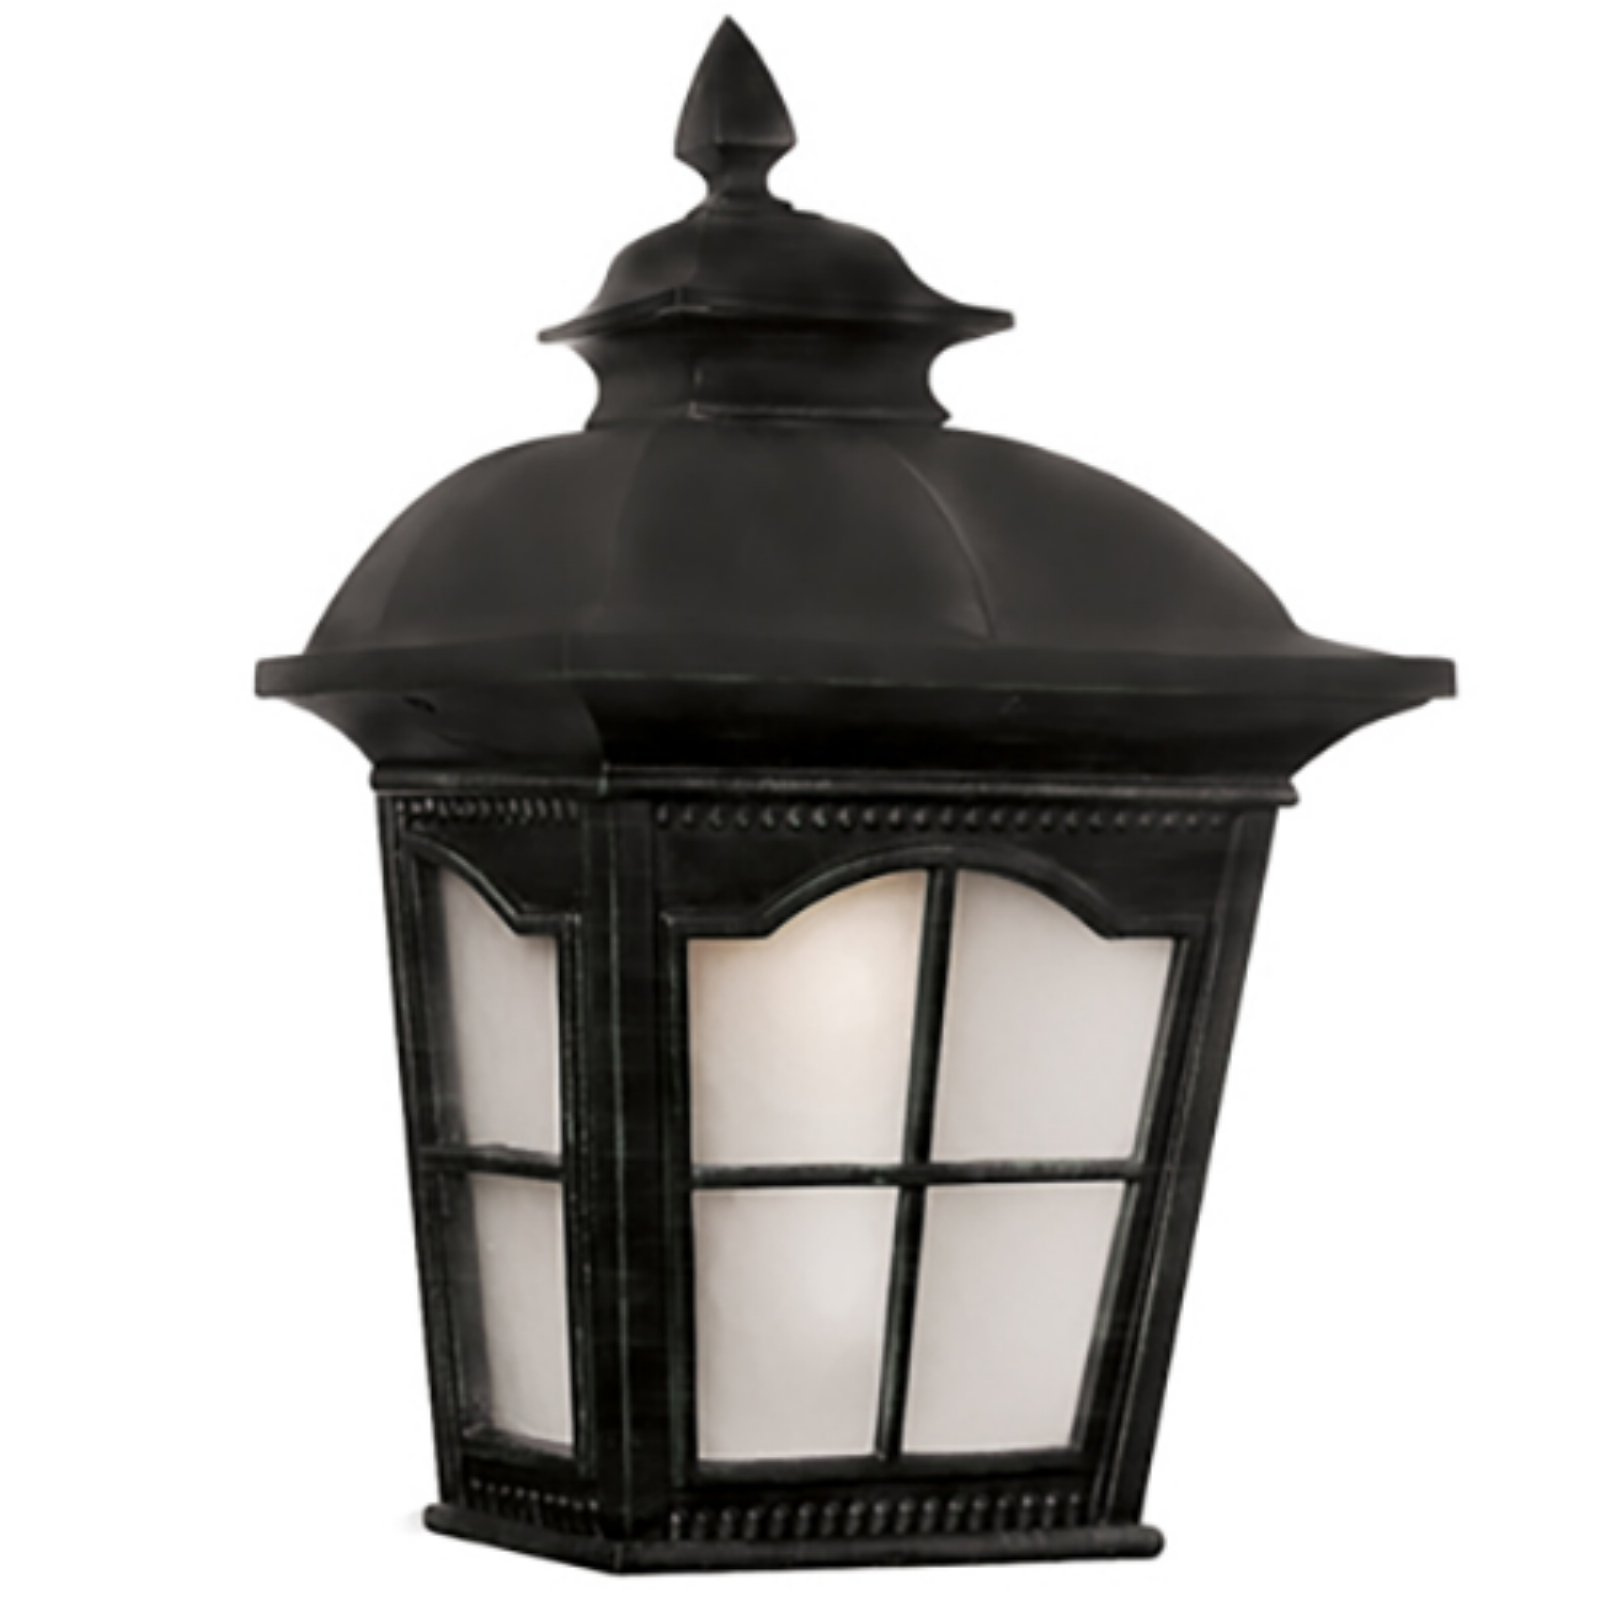 Trans Globe Lighting Briarwood 5429-1 BK Outdoor Pocket Lantern